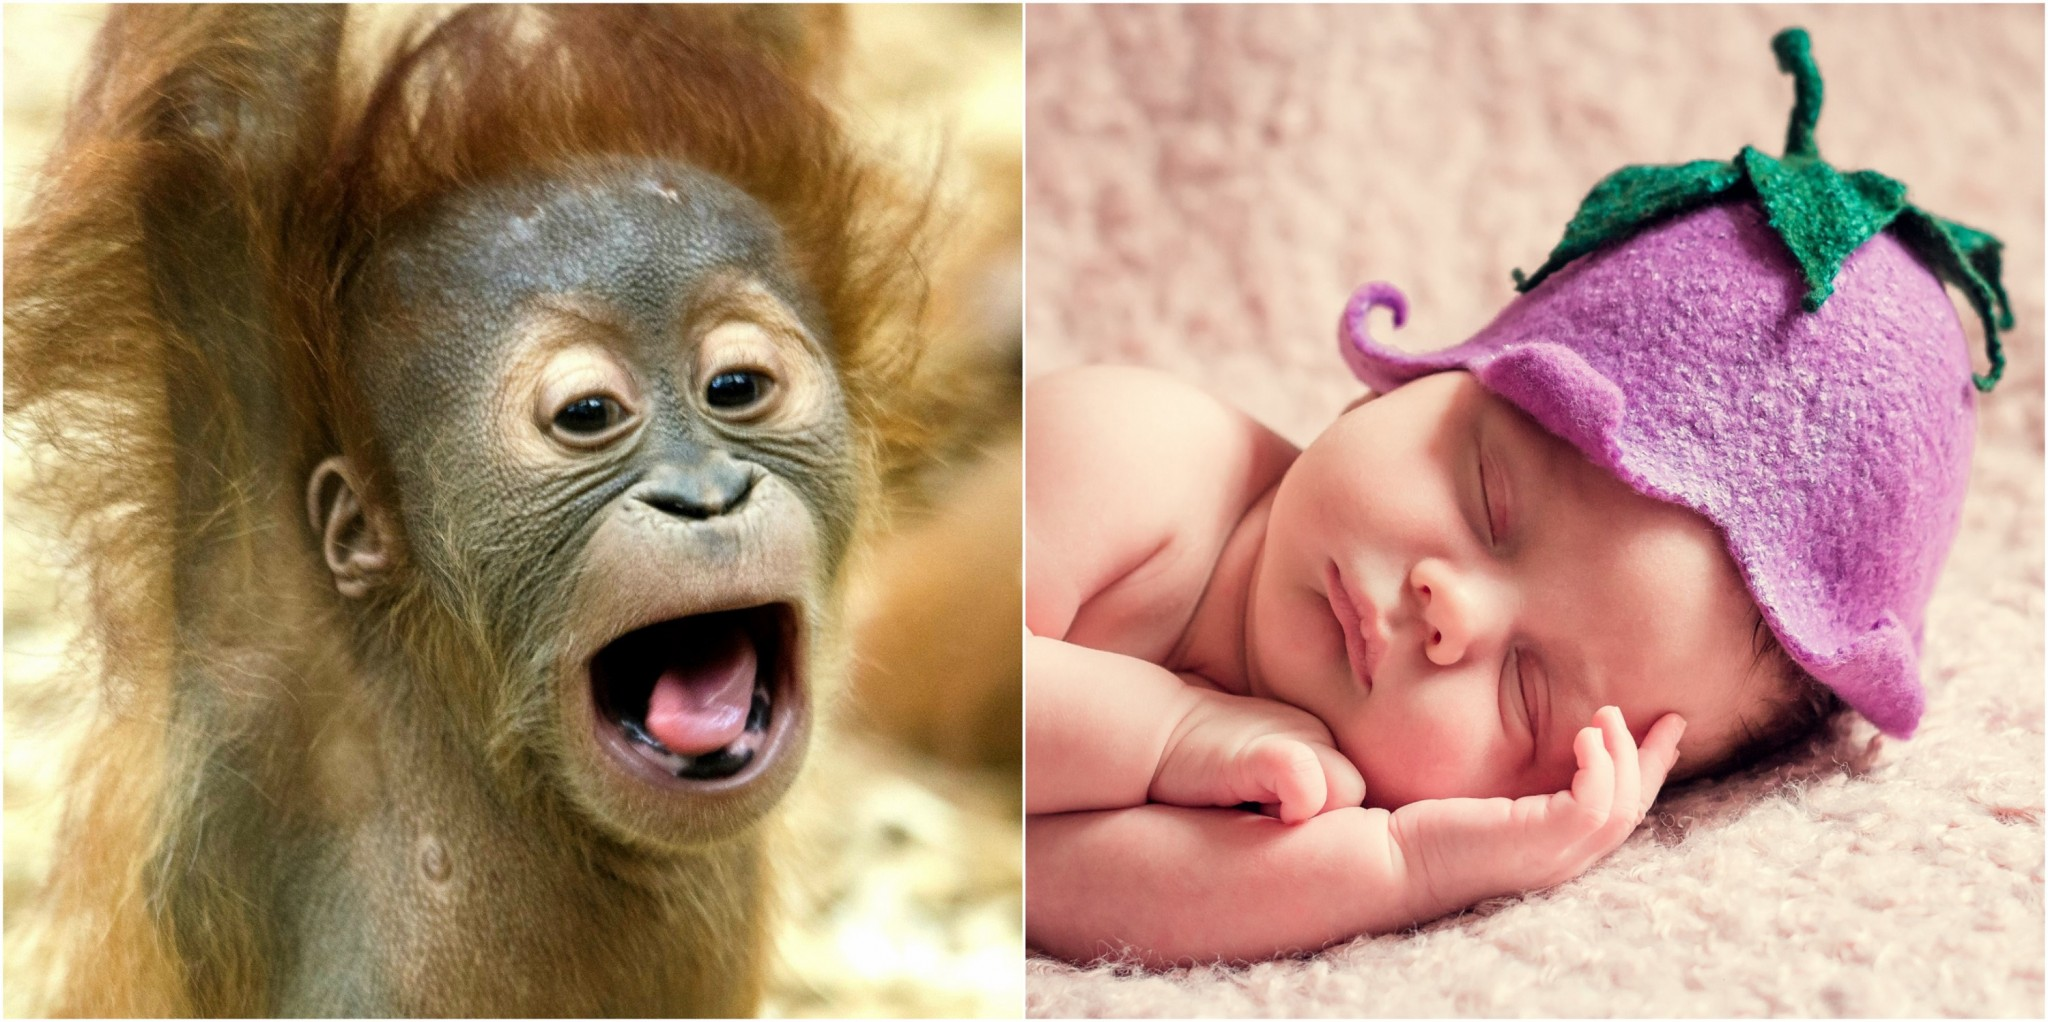 While apes and humans alike are born with very little understanding of how to behave in the world, the former adjusts much more quickly than the latter. Photos: Public domain.